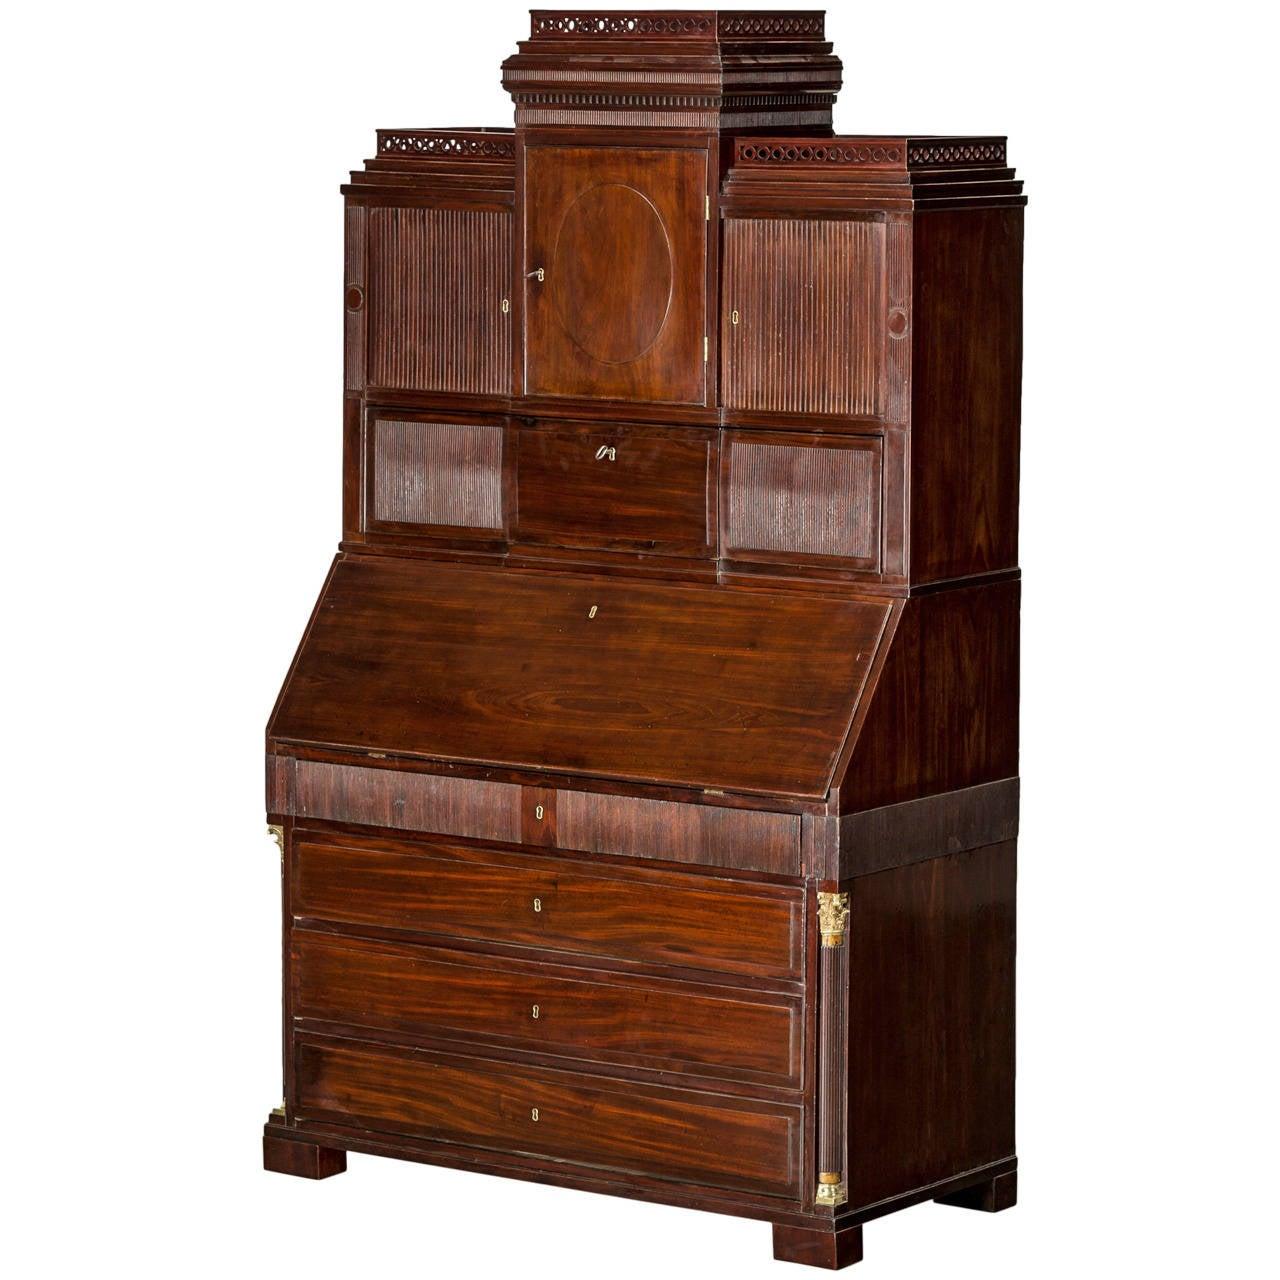 architectural louis xvi bureau denmark circa 1780 for sale at 1stdibs. Black Bedroom Furniture Sets. Home Design Ideas